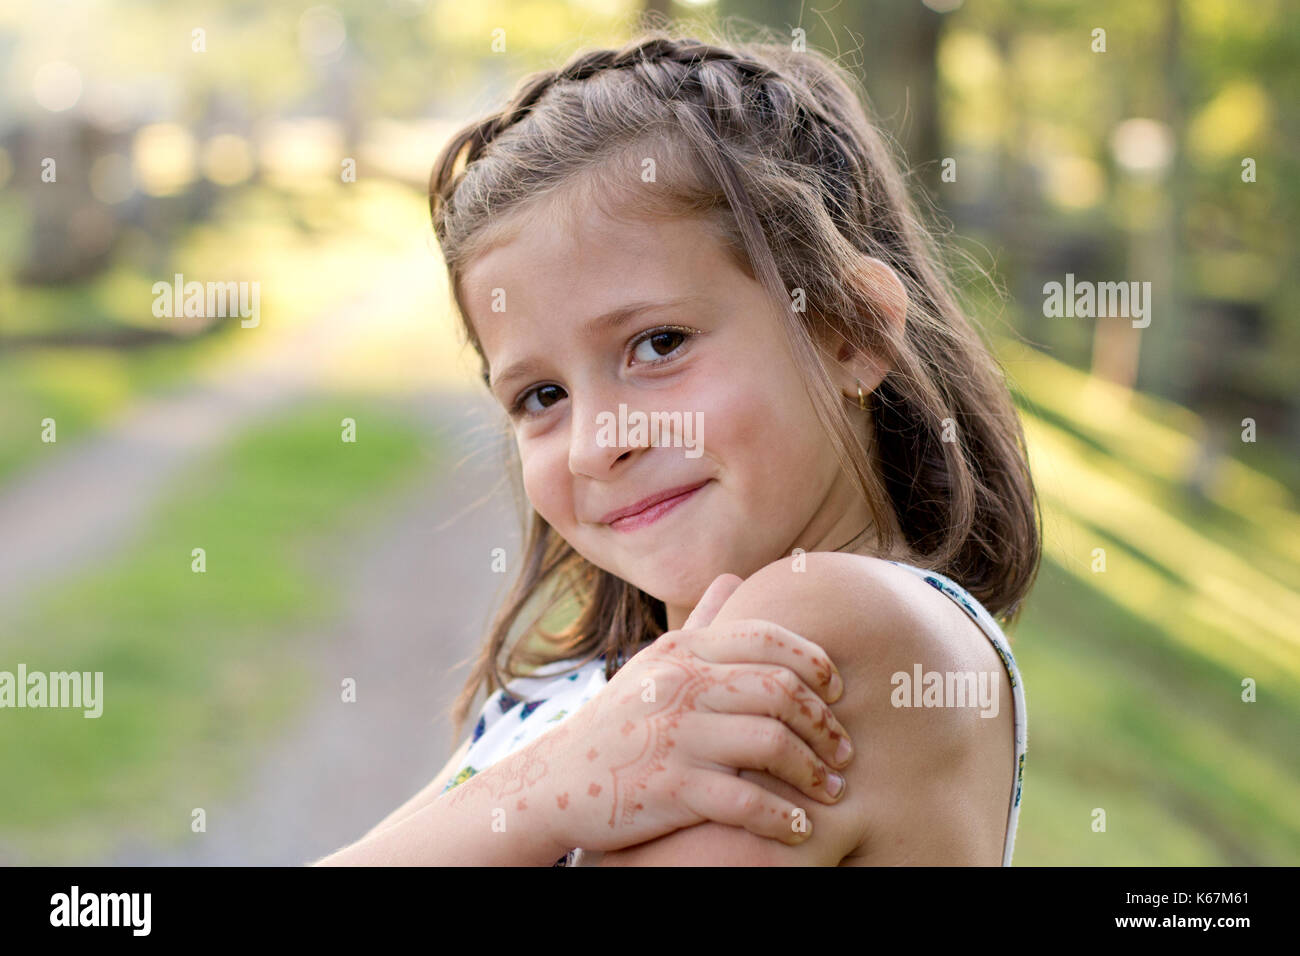 8cf48f3aa118 portrait of a smart looking young girl with a henna tattoo on her hand -  Stock